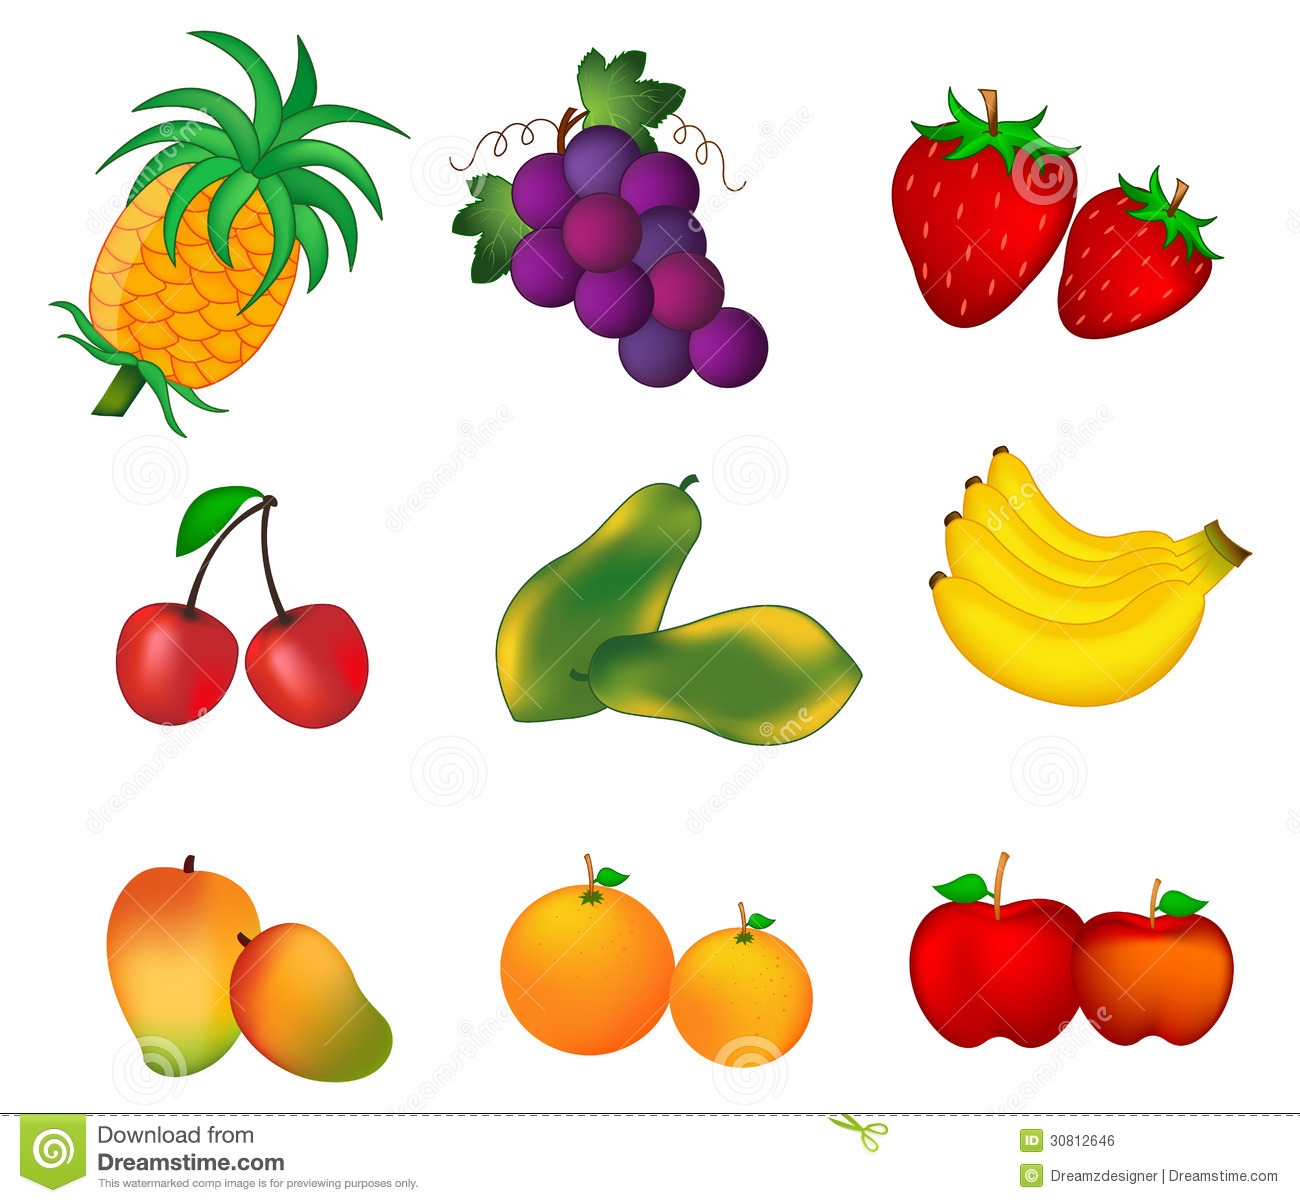 Free clipart images fruit.